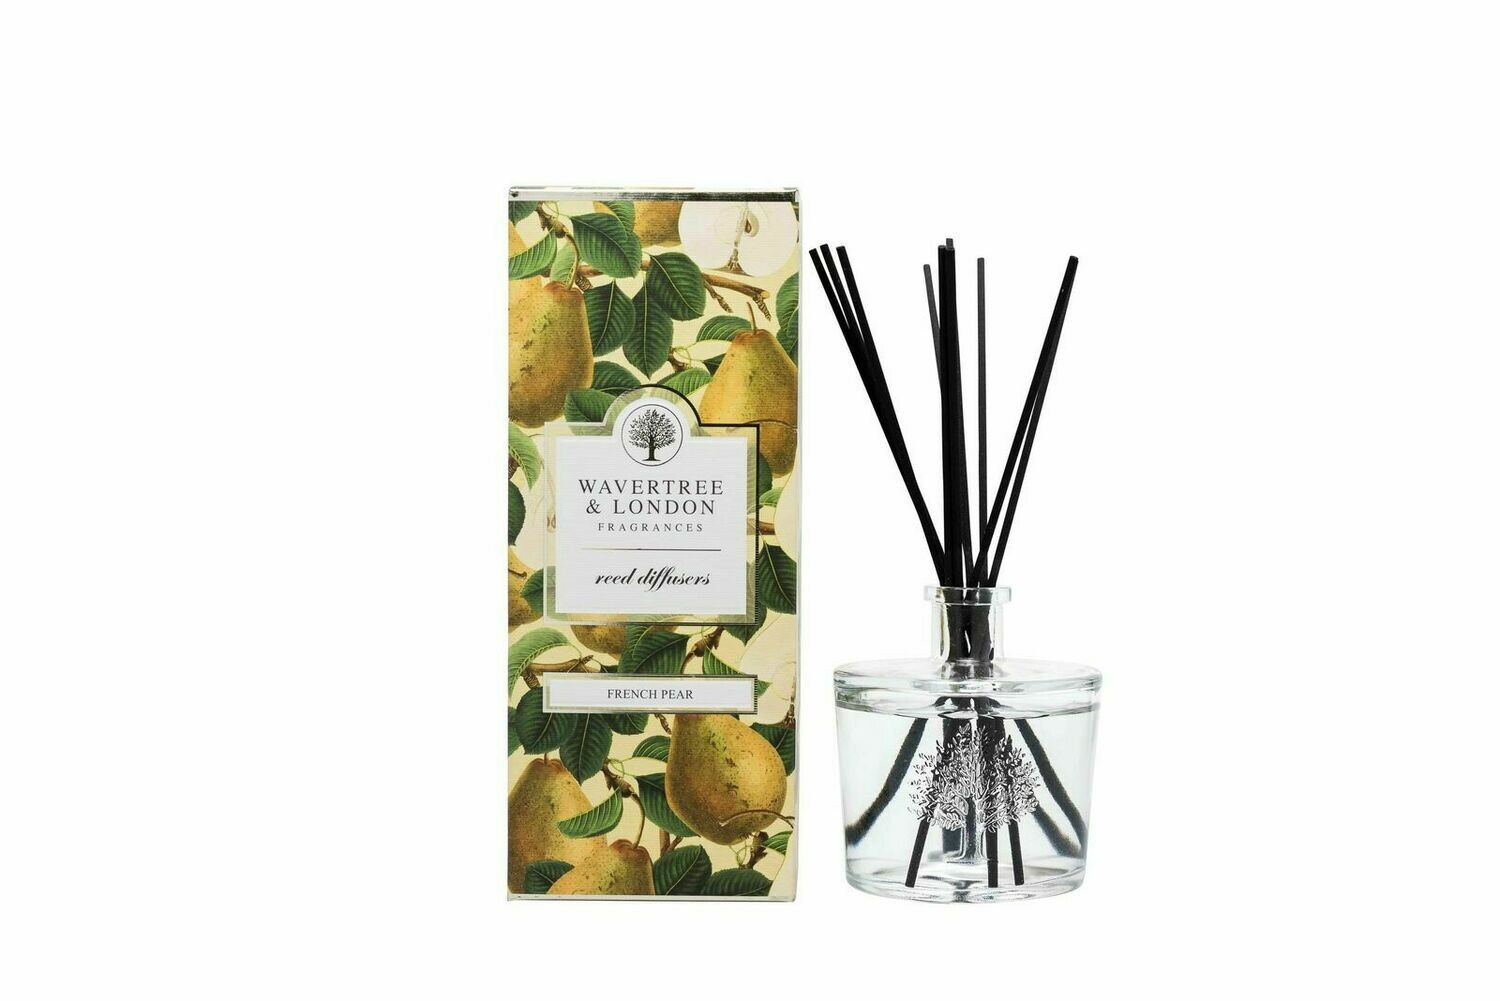 WAVERTREE&LONDON - Fragrance Diffuser - FRENCH PEAR-350ml